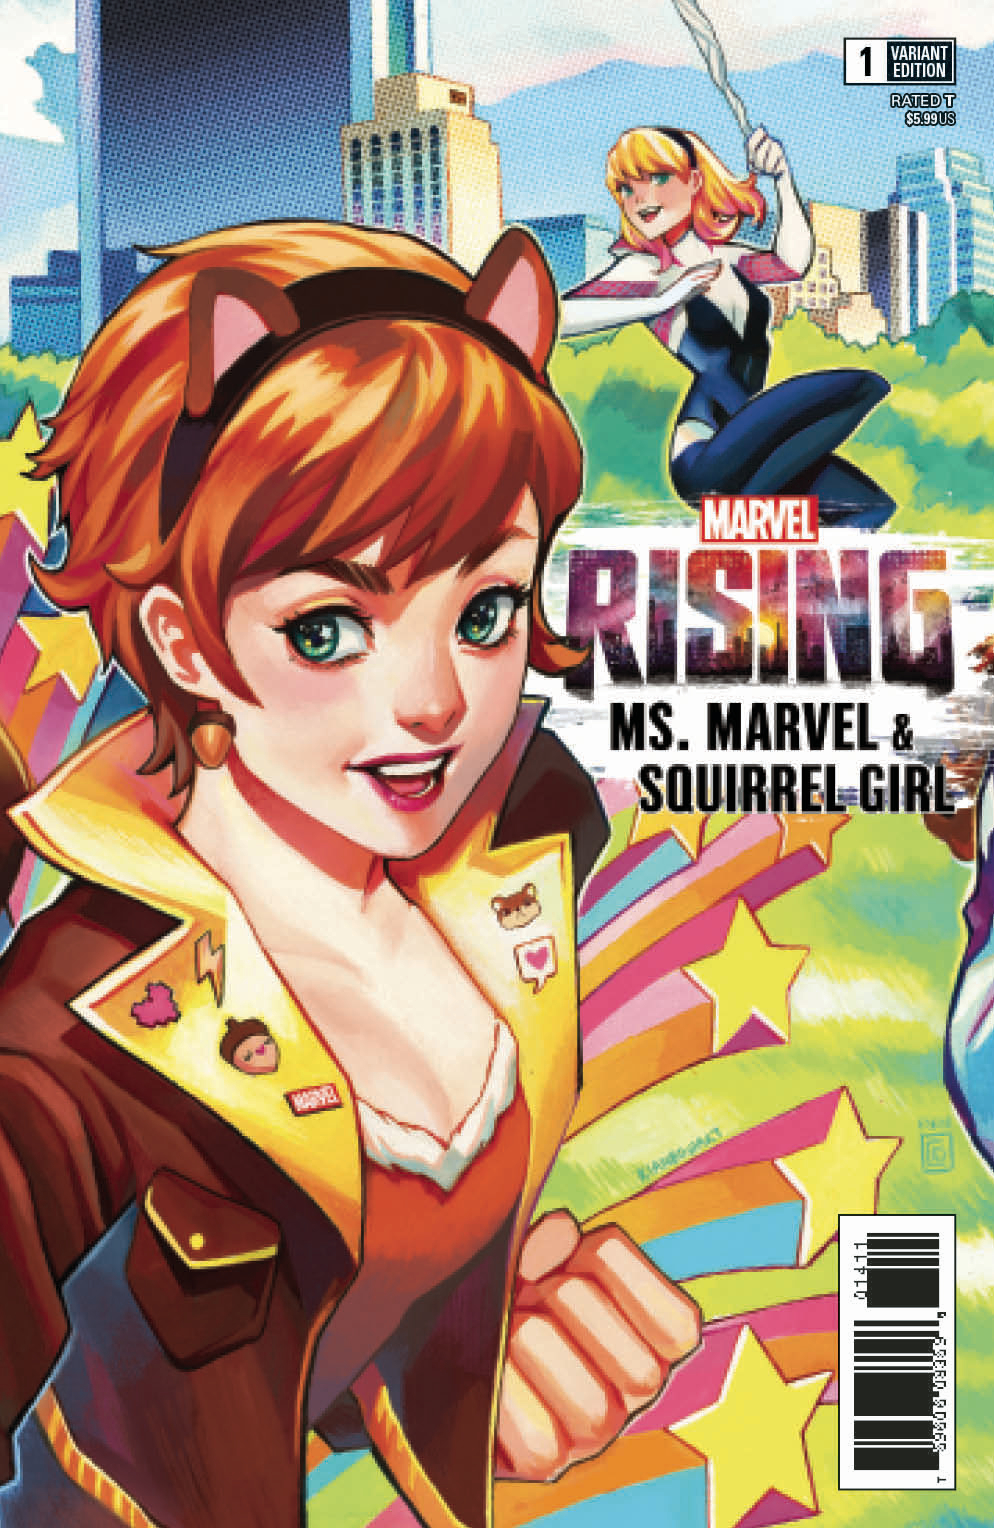 MARVEL RISING MS MARVEL SQUIRREL GIRL #1 CONNECTING VAR